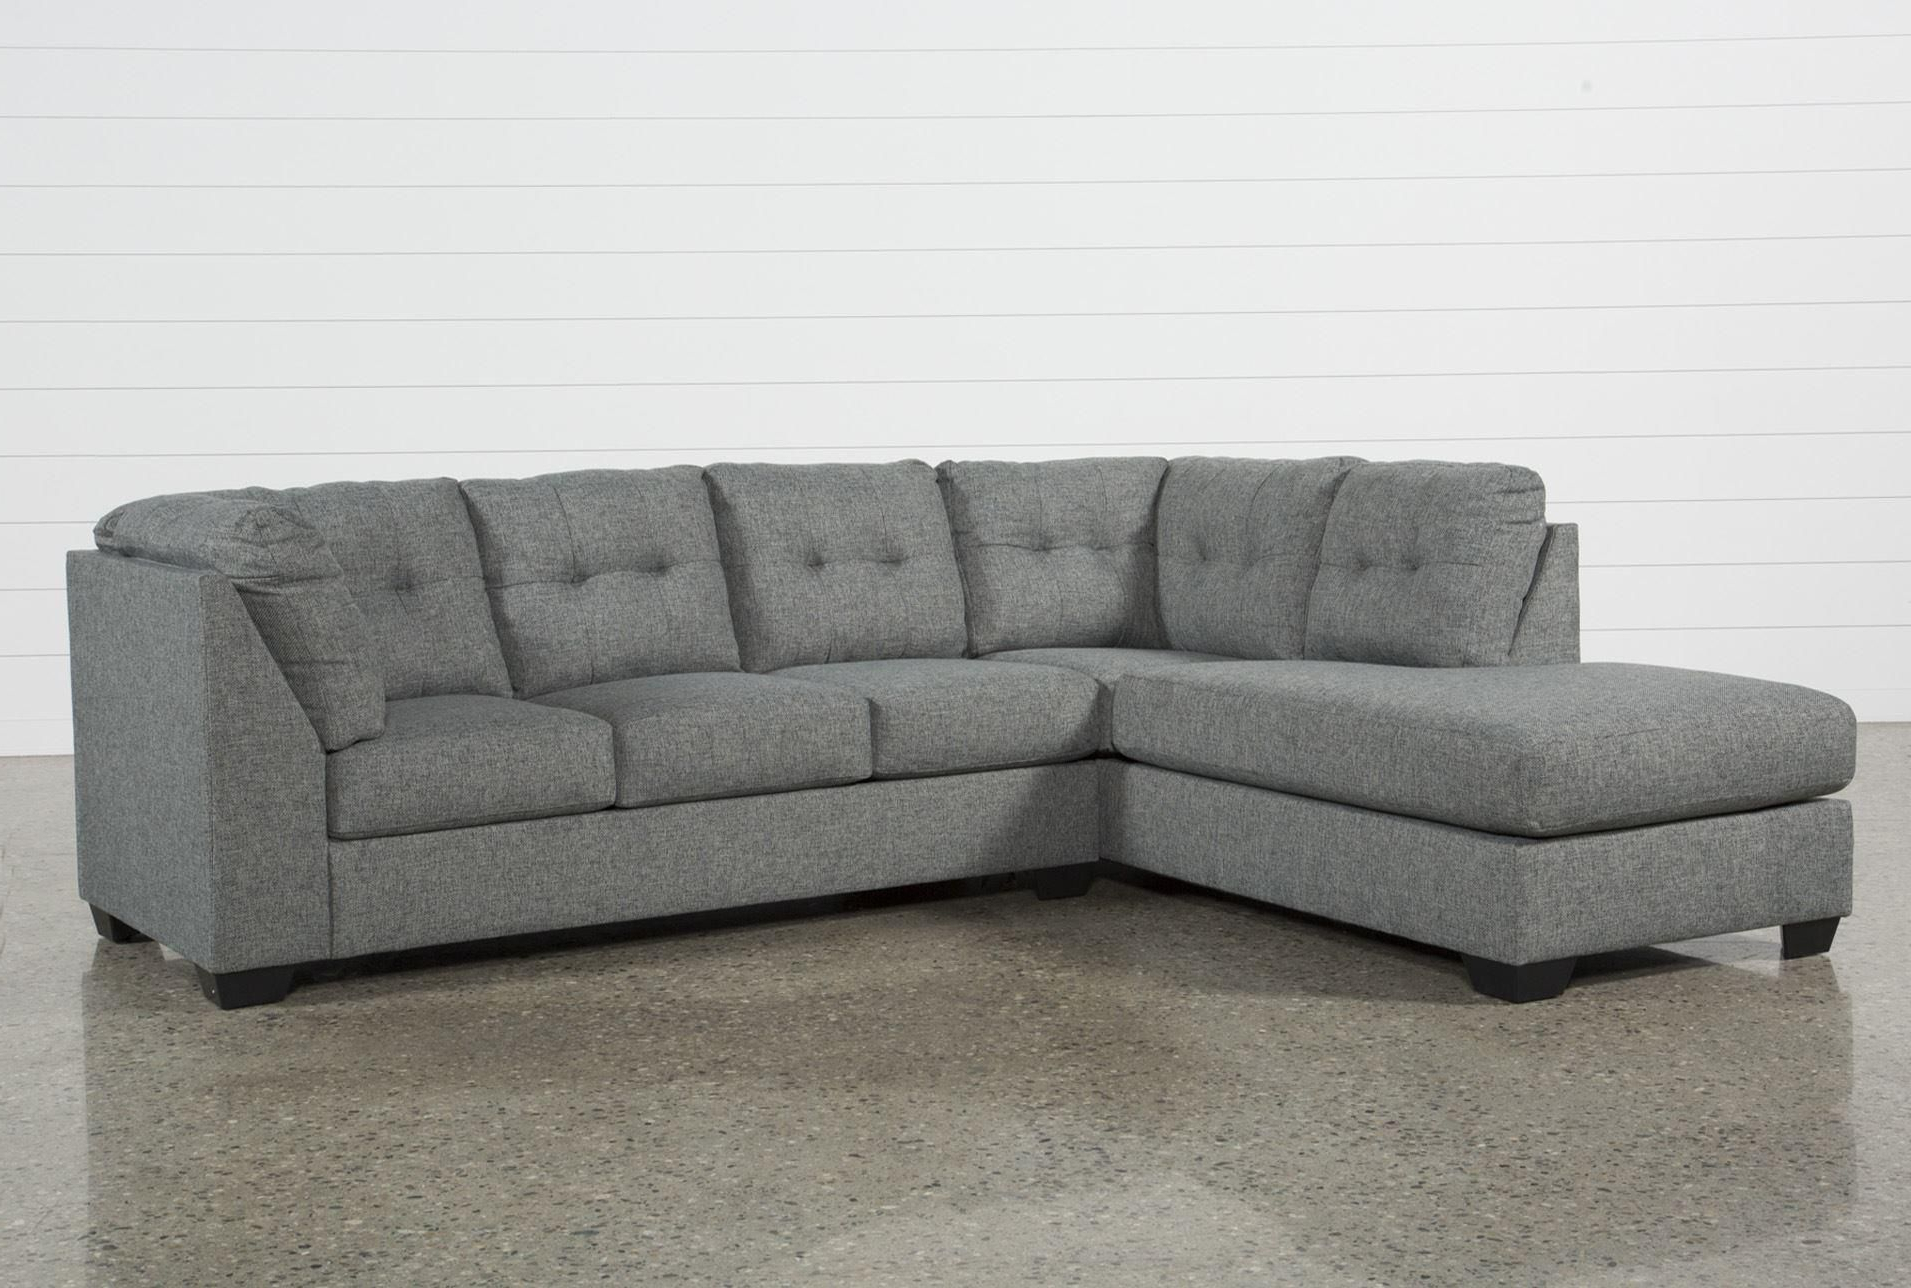 Turdur 3 Piece Sectionals With Laf Loveseat For Well Known Arrowmask 2 Piece Sectional W/sleeper & Left Facing Chaise (View 8 of 20)